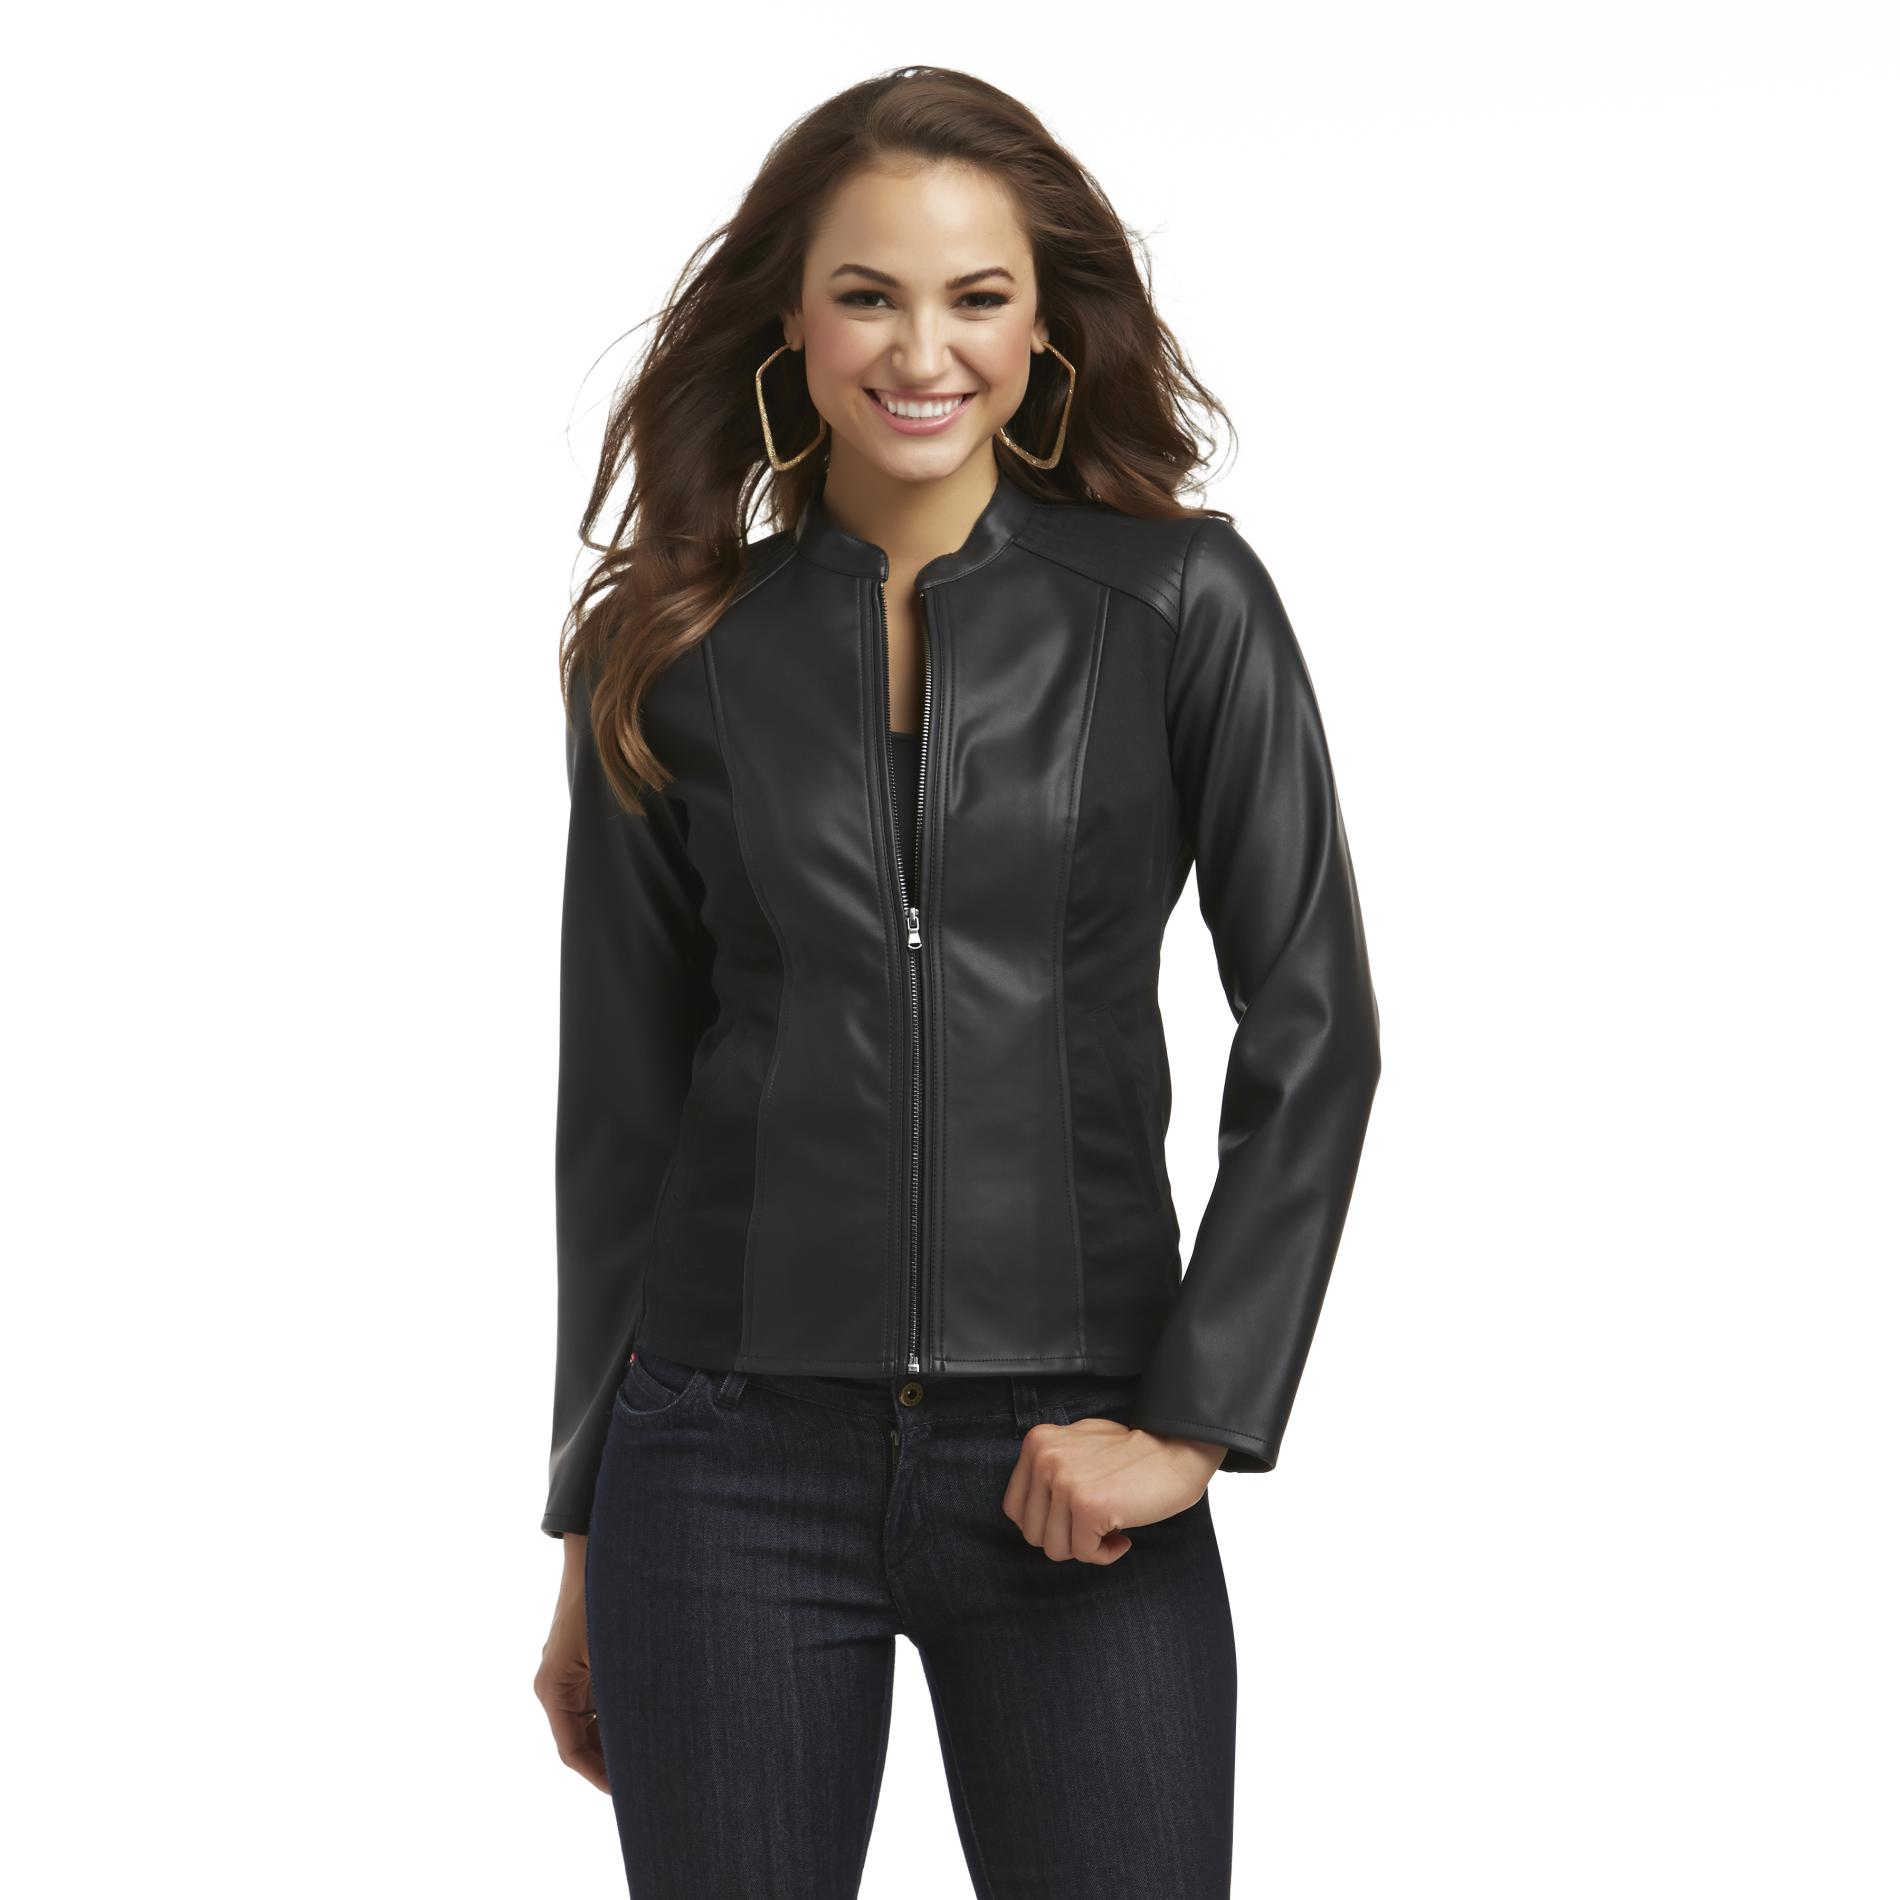 Sofia by Sofia Vergara Women's Moto Jacket at Kmart.com